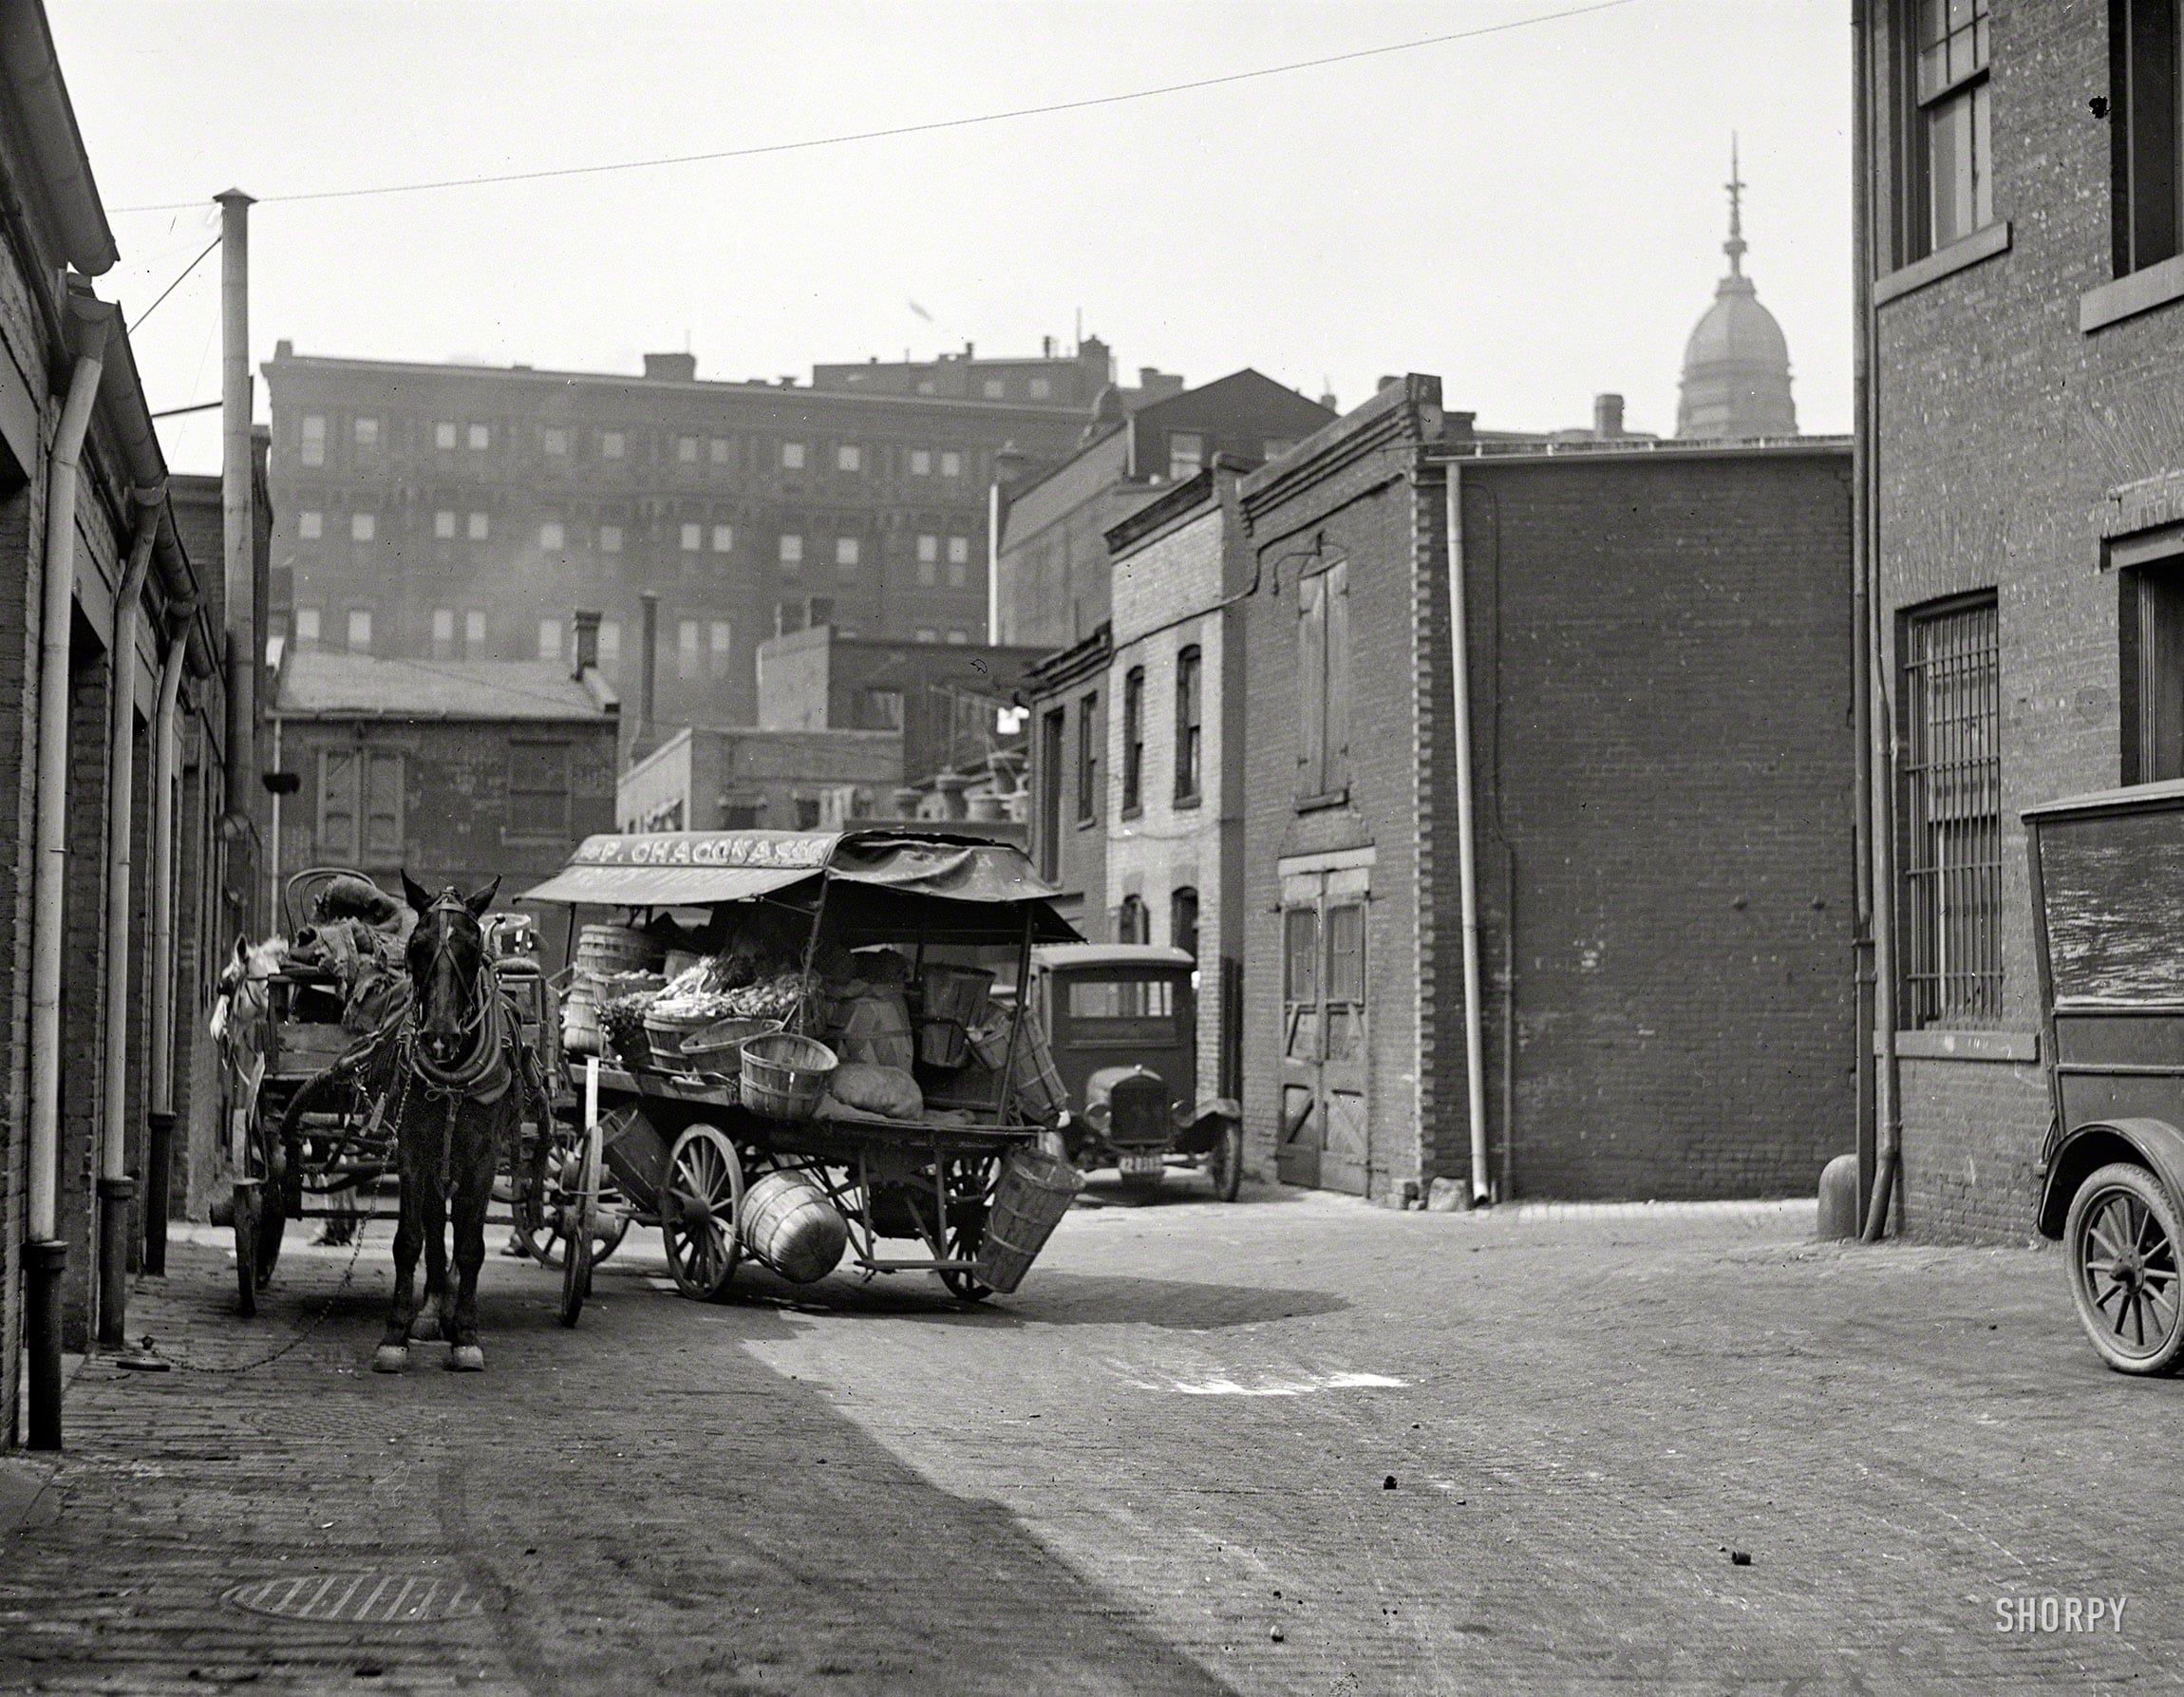 "Produce wagon in city, 1923."" One in a series of Harris & Ewing plates showing the alleys and backstreets of Washington, D.C. The subject here is a Chaconas grocery wagon."